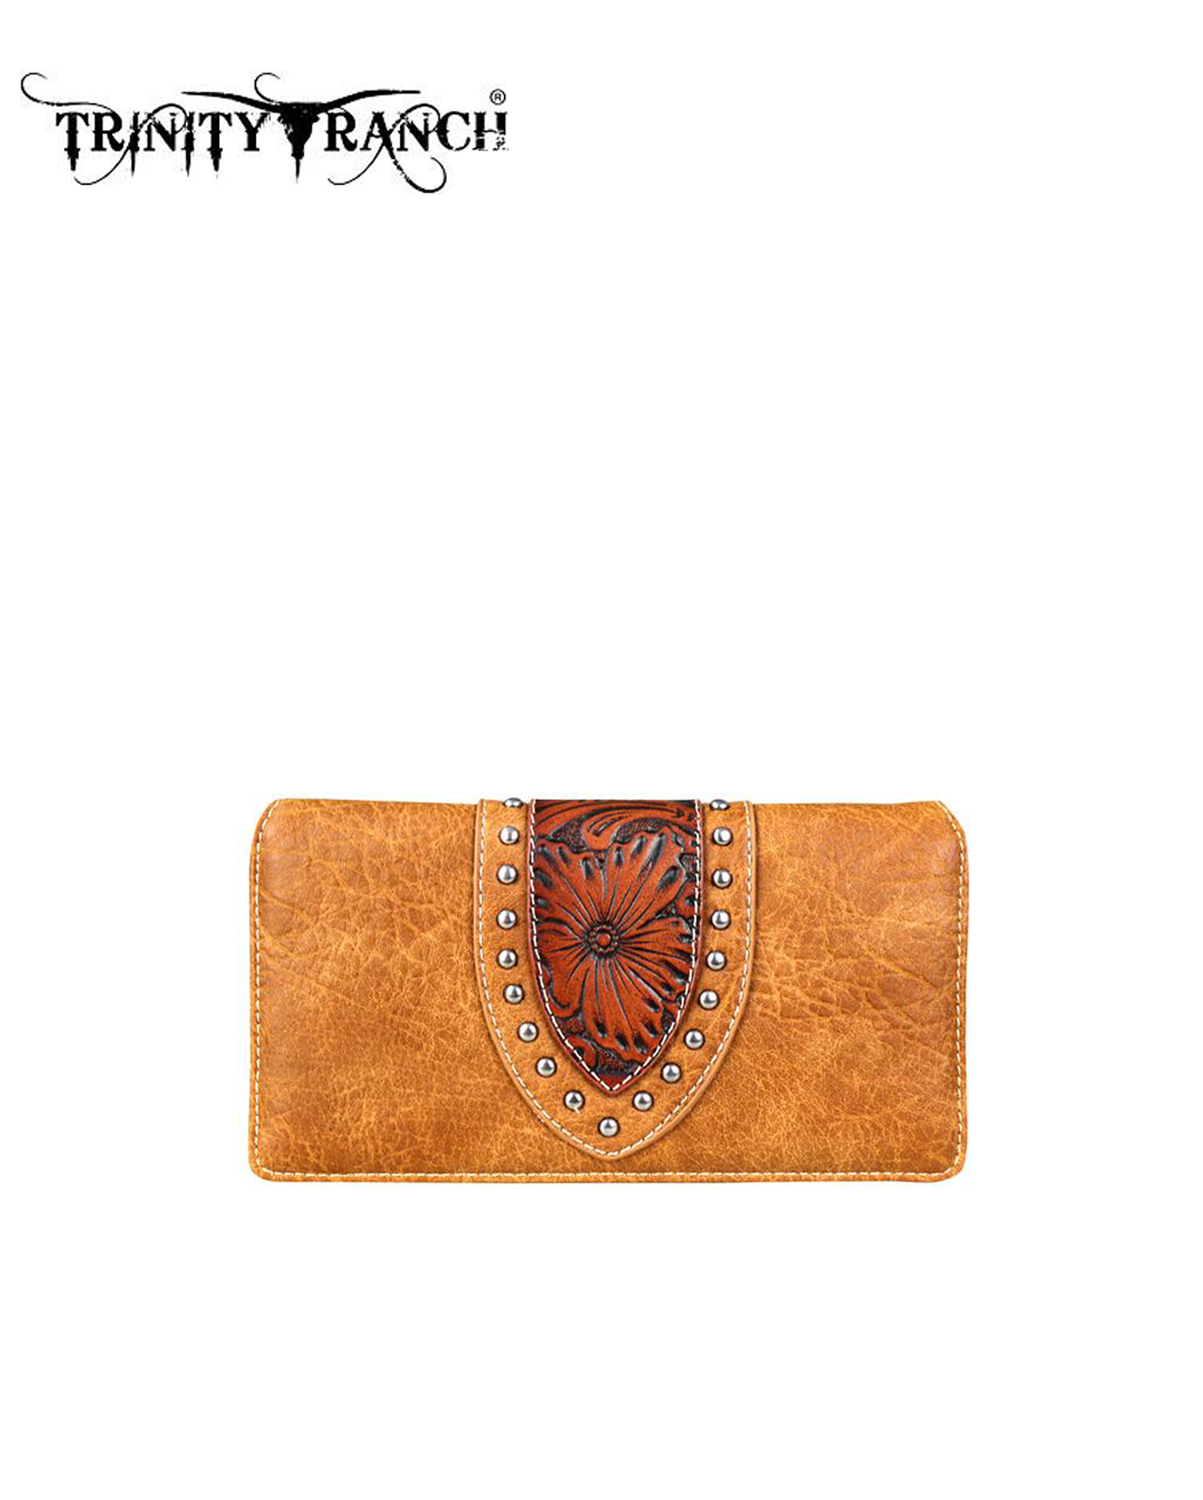 TR65W010(BR)-MW-wholesale-wallet-montana-west-trinity-ranch-floral-tooled-genuine-leather-flap-rhinestone(0).jpg